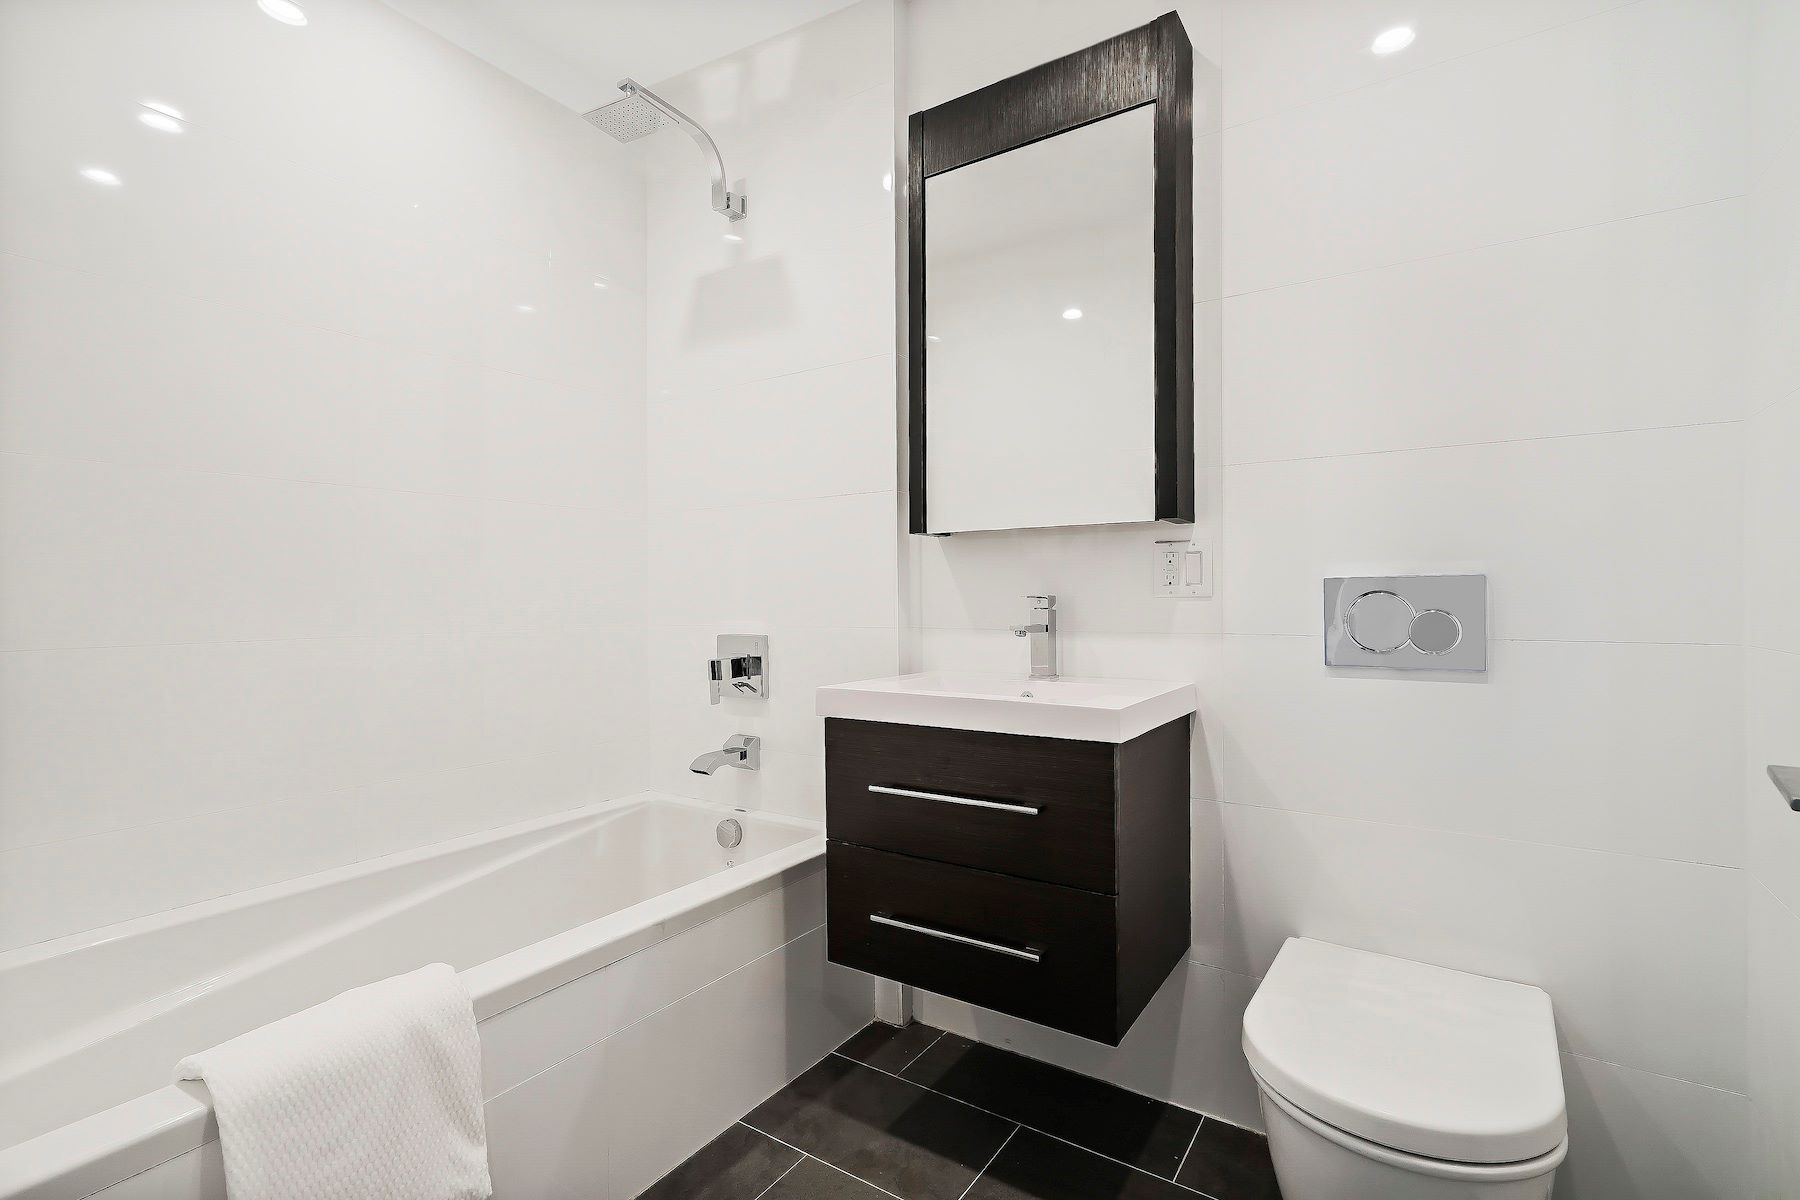 Additional photo for property listing at Stanton on Sixth 695 6th Avenue, 2M Brooklyn, New York 11215 United States